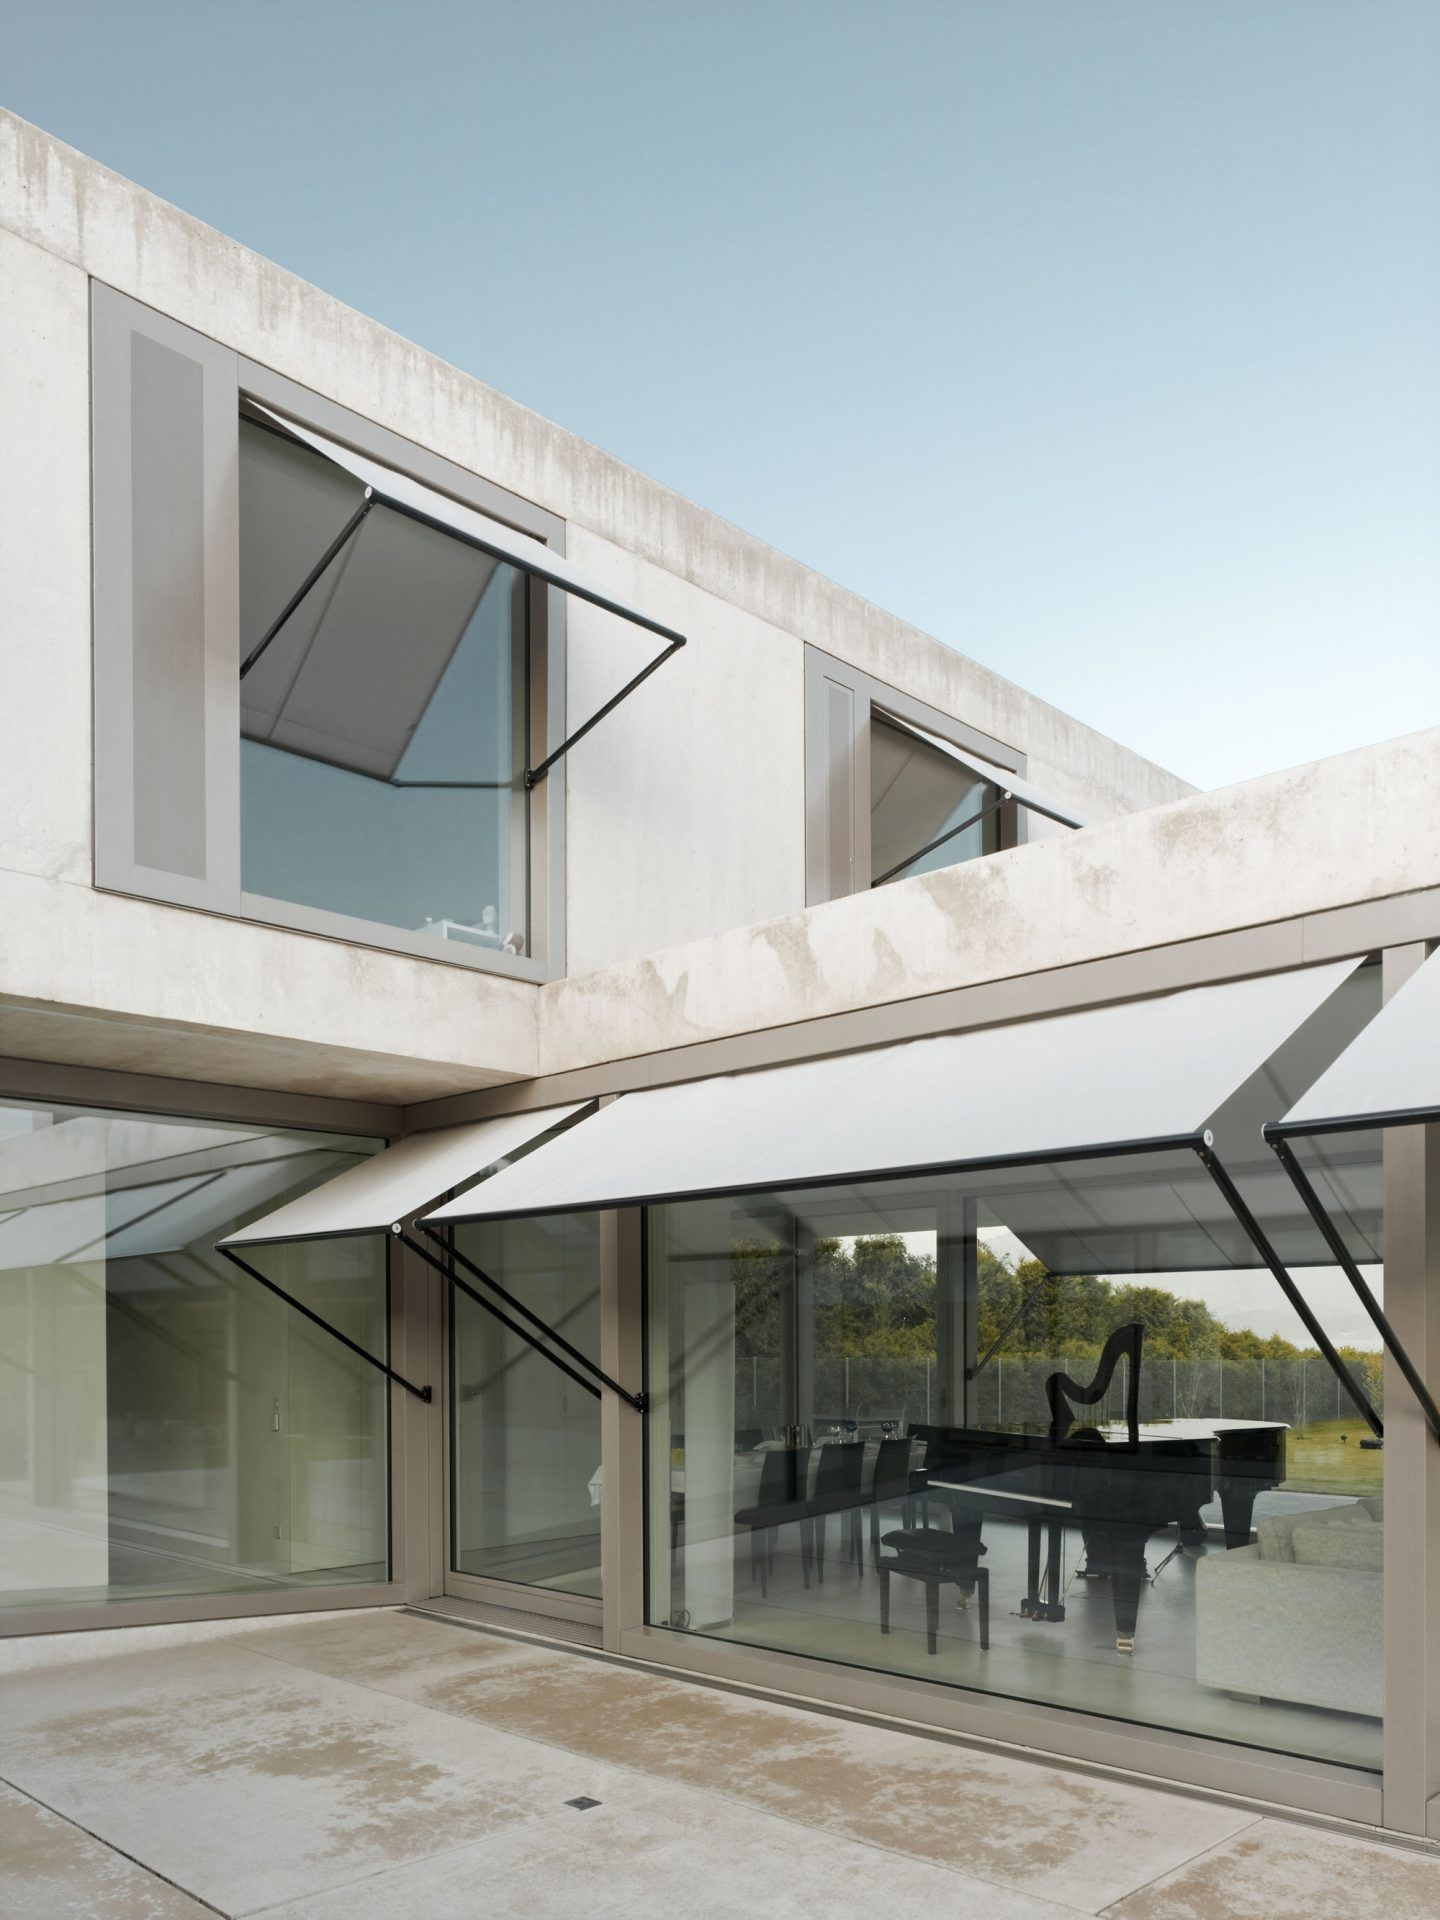 IGNANT-Architecture-Niklaus-Graber-Christoph-Steiger-Architects-Villa-M-004